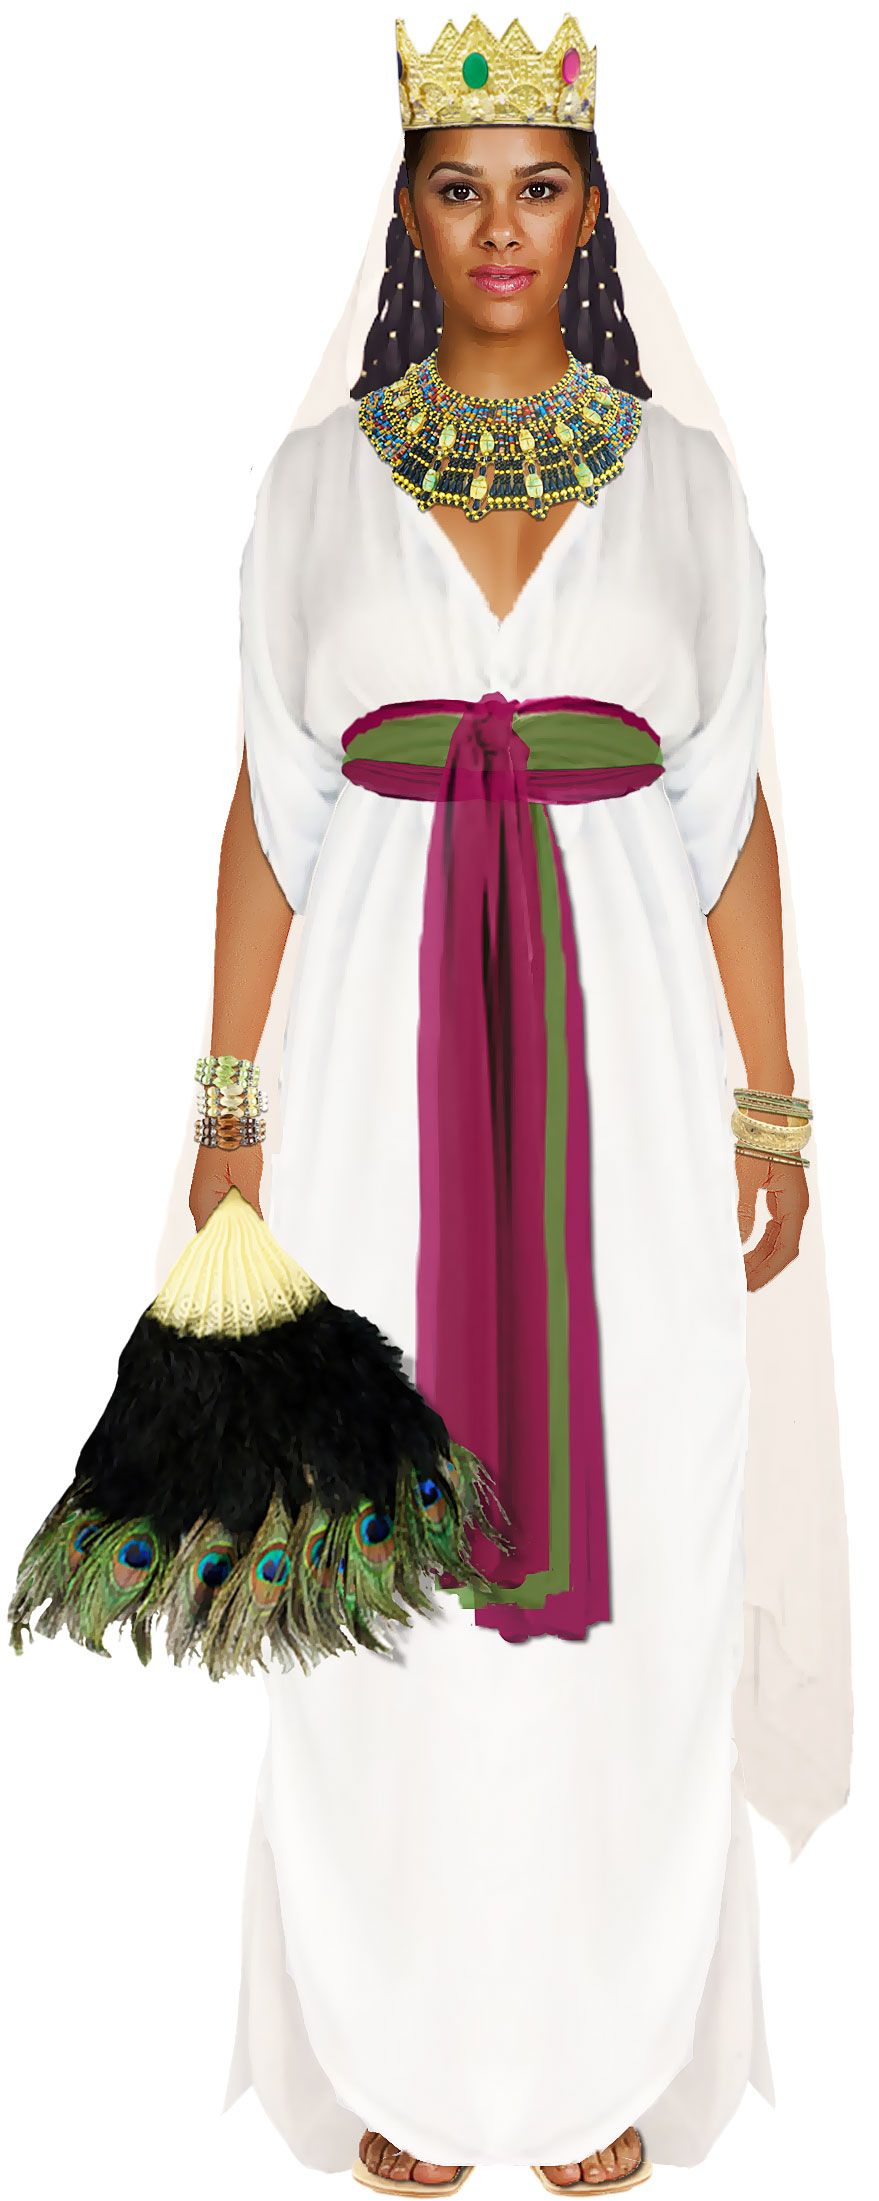 Tax Collector: Biblical Costumes: Christian Costumes | Bible Story ...